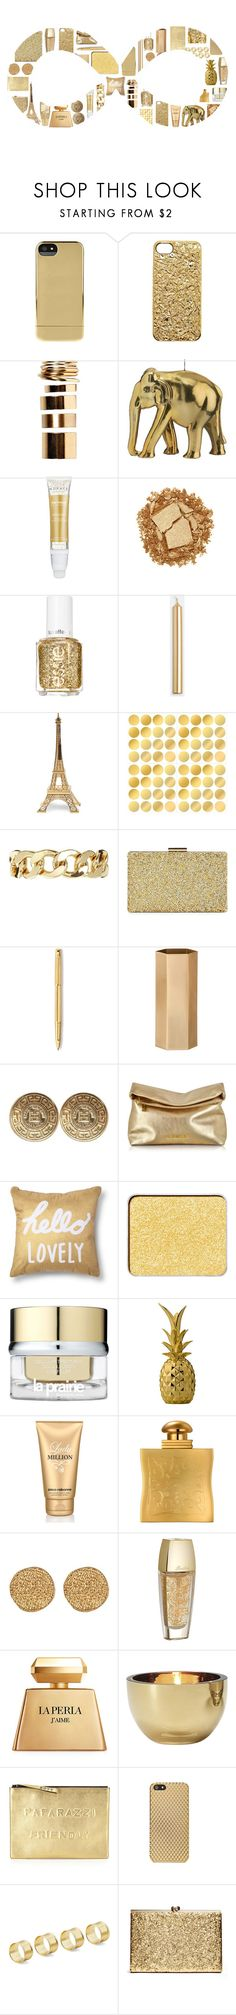 """""""Infinity"""" by stelbell ❤ liked on Polyvore featuring Incase, Marc by Marc Jacobs, Boohoo, Wiedemann Candles, NuFace, Urban Decay, Essie, Unison, Merci Gustave! and WallPops"""